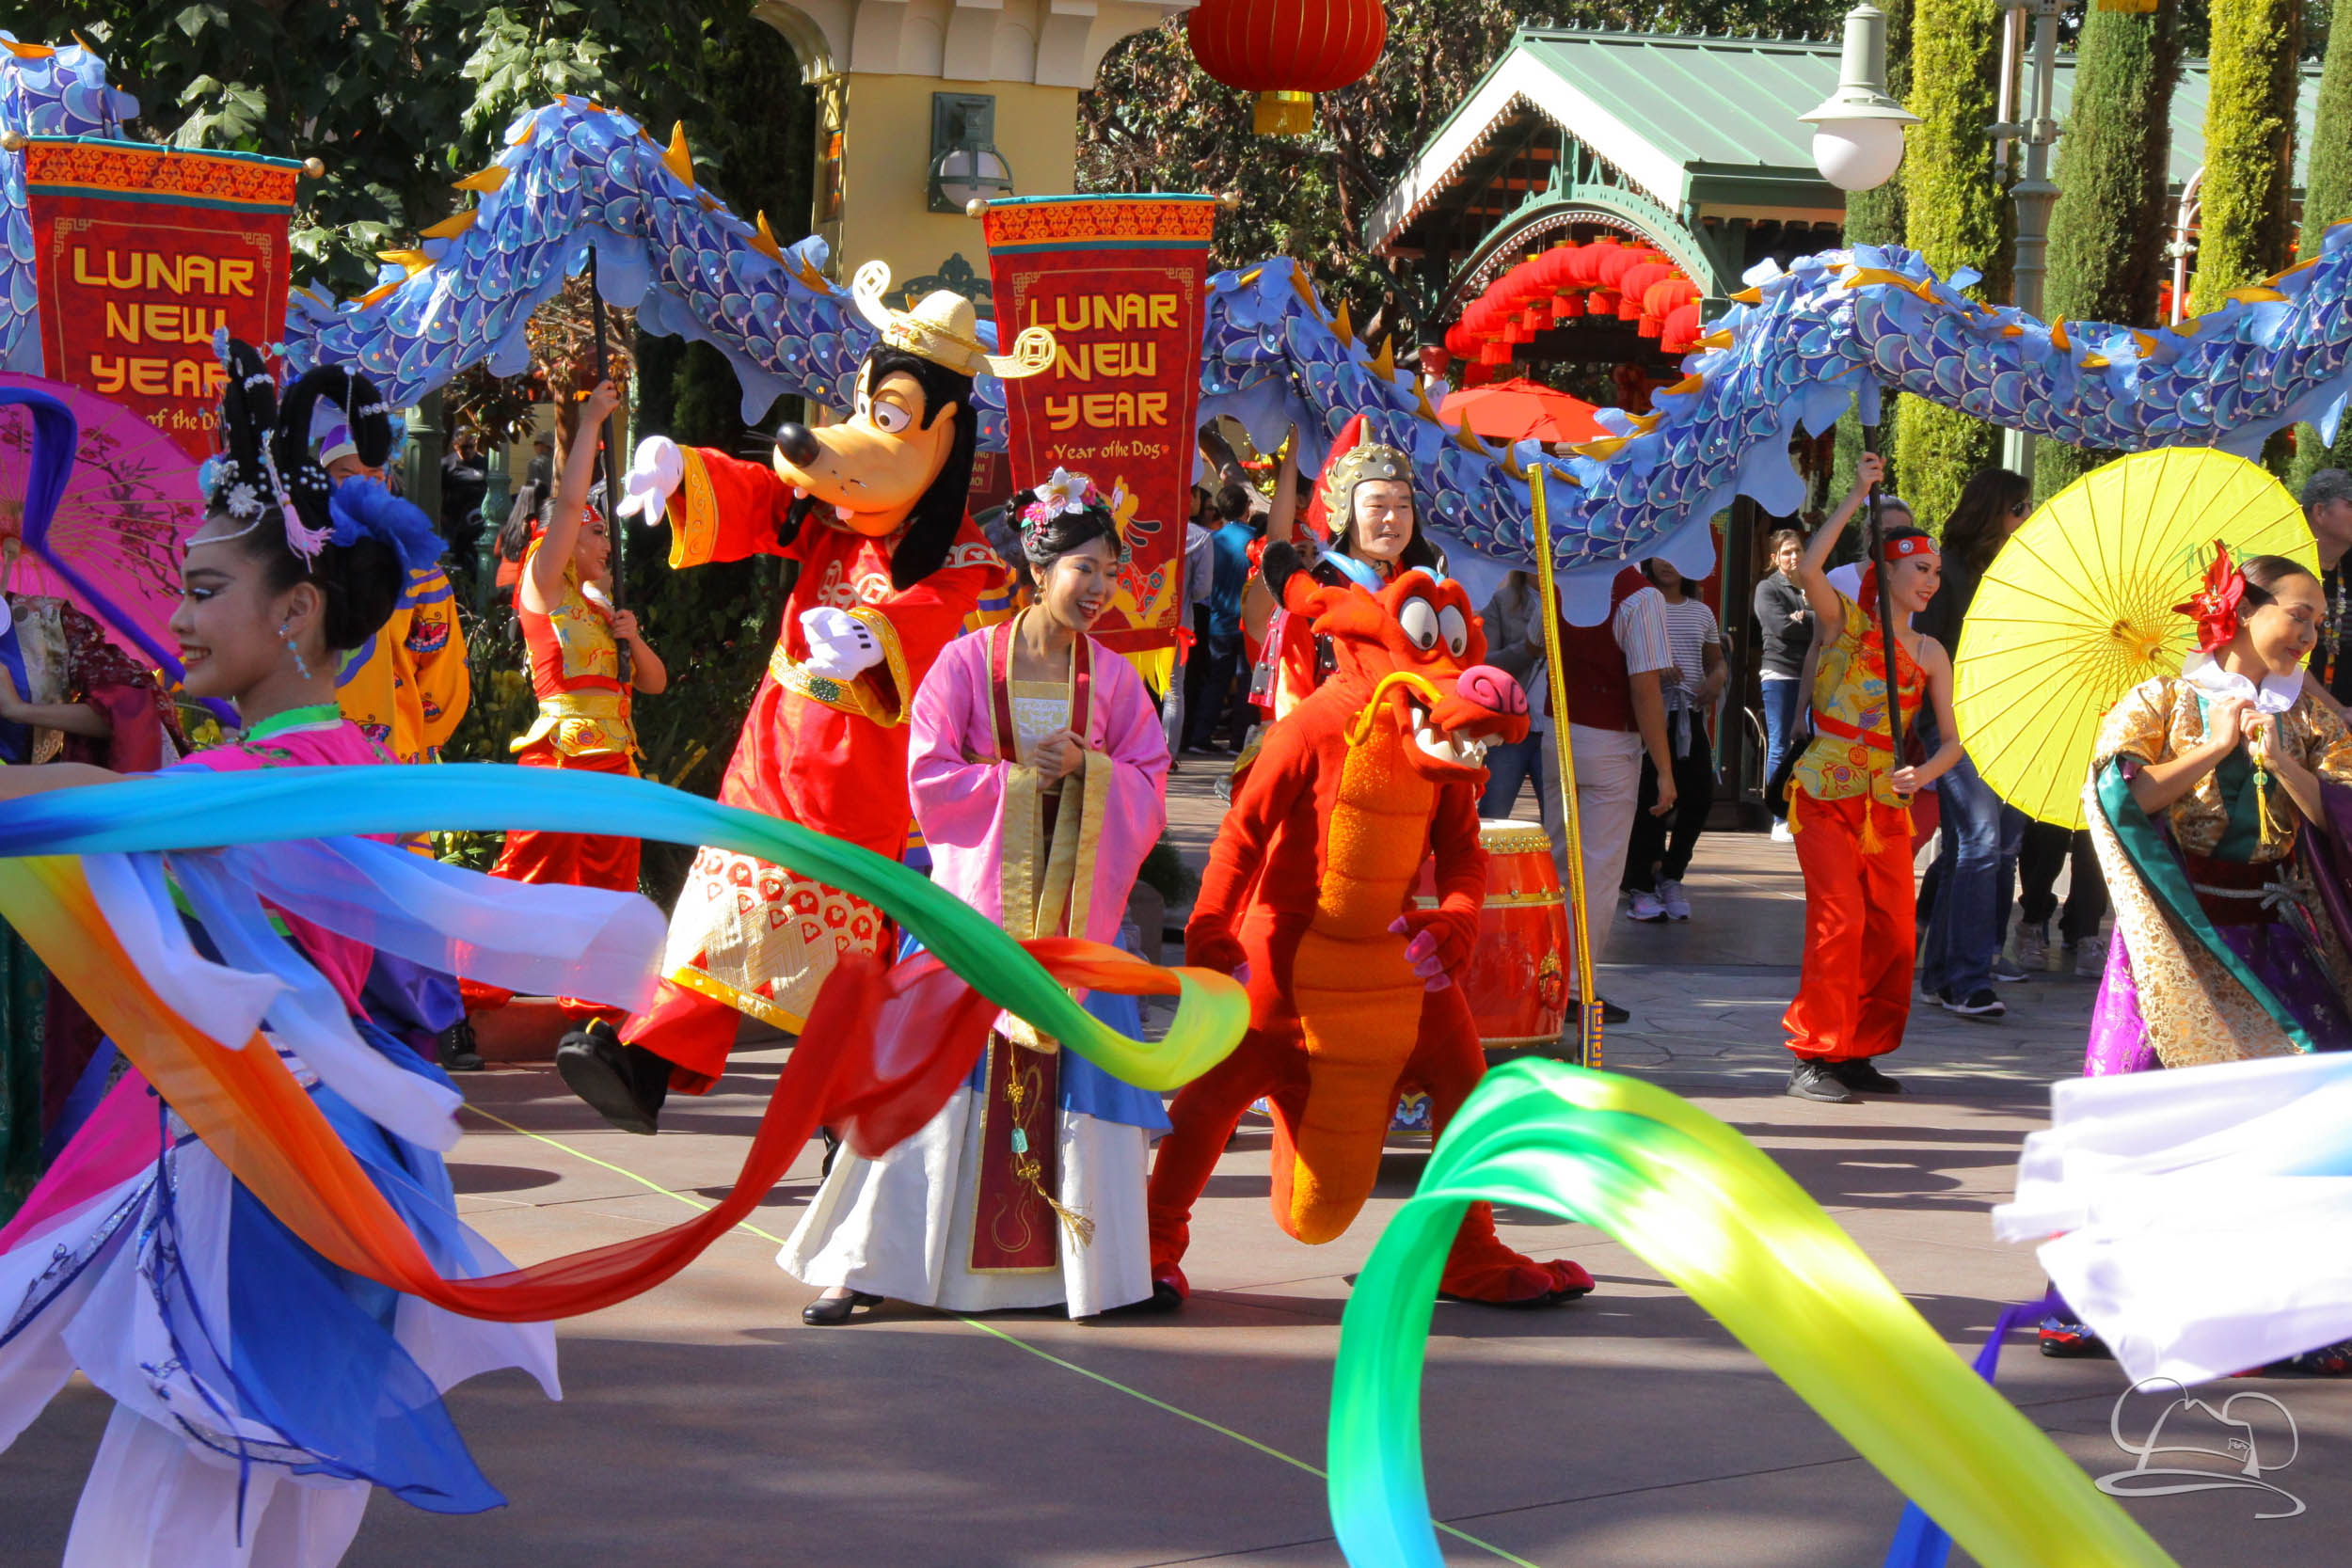 The Disneyland Resort Celebrates Year of the Dog with Lunar New Year Festival!